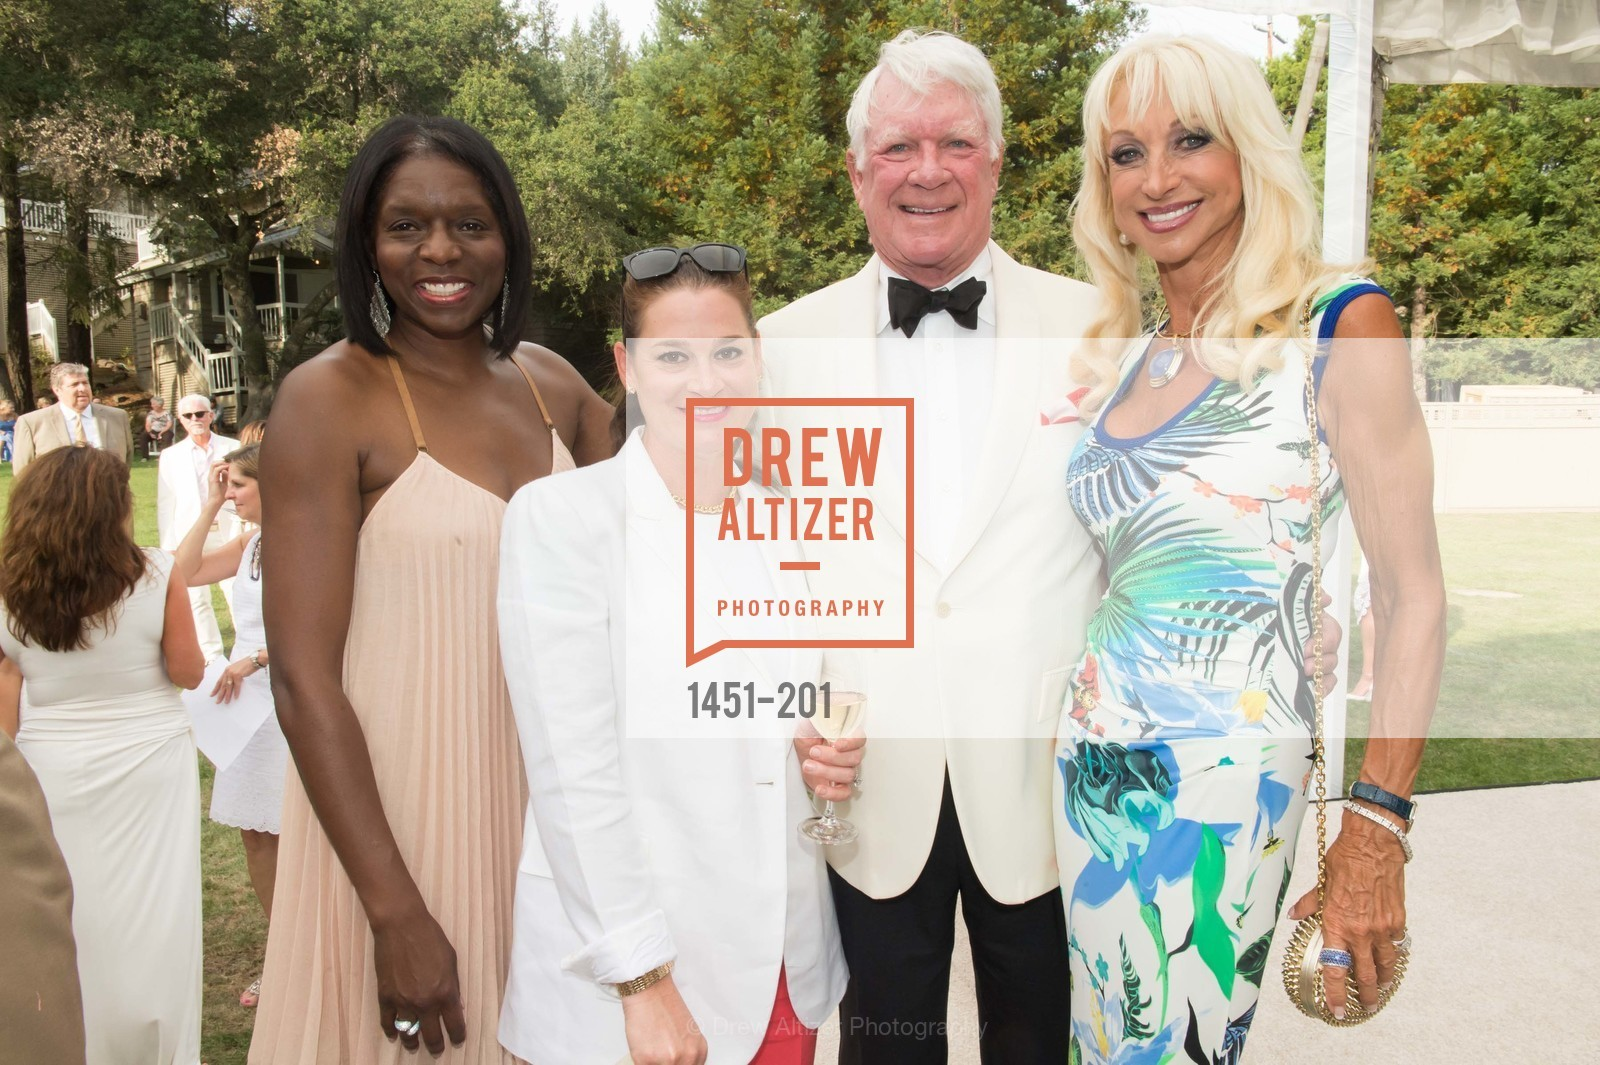 Kelly Carter, Claire Stull, Alton Irby, Daru Kawalkowsi, Festival del Sole Annual Gala at Meadowood Napa Valley, Meadowood Napa Valley. 900 Meadowood Ln, July 19th, 2015,Drew Altizer, Drew Altizer Photography, full-service agency, private events, San Francisco photographer, photographer california